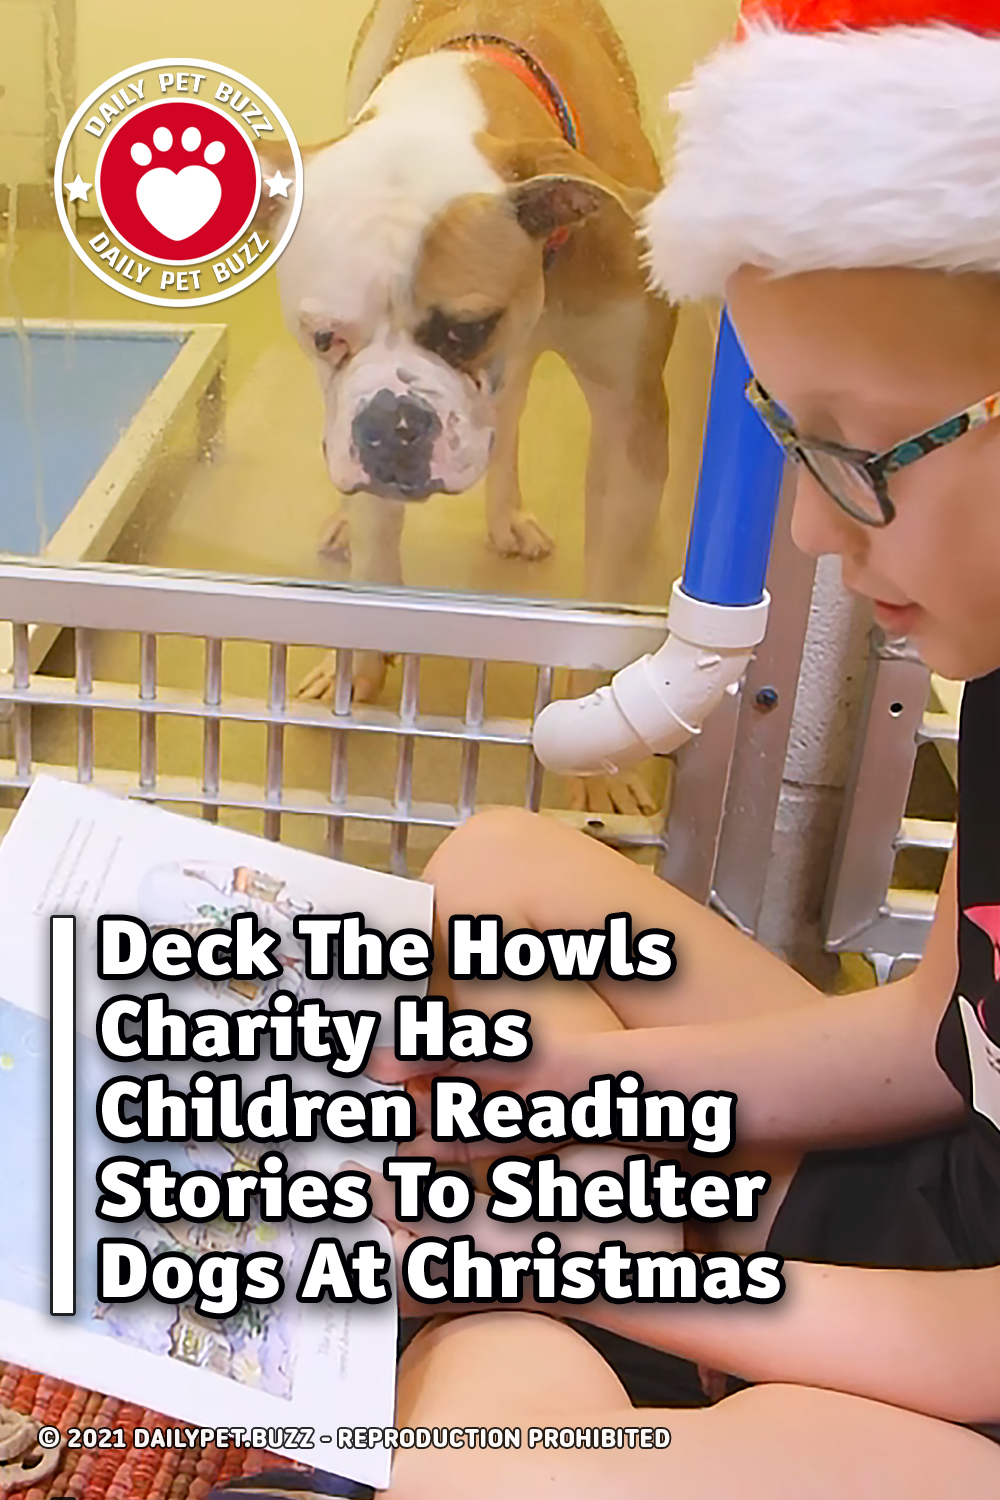 Deck The Howls Charity Has Children Reading Stories To Shelter Dogs At Christmas